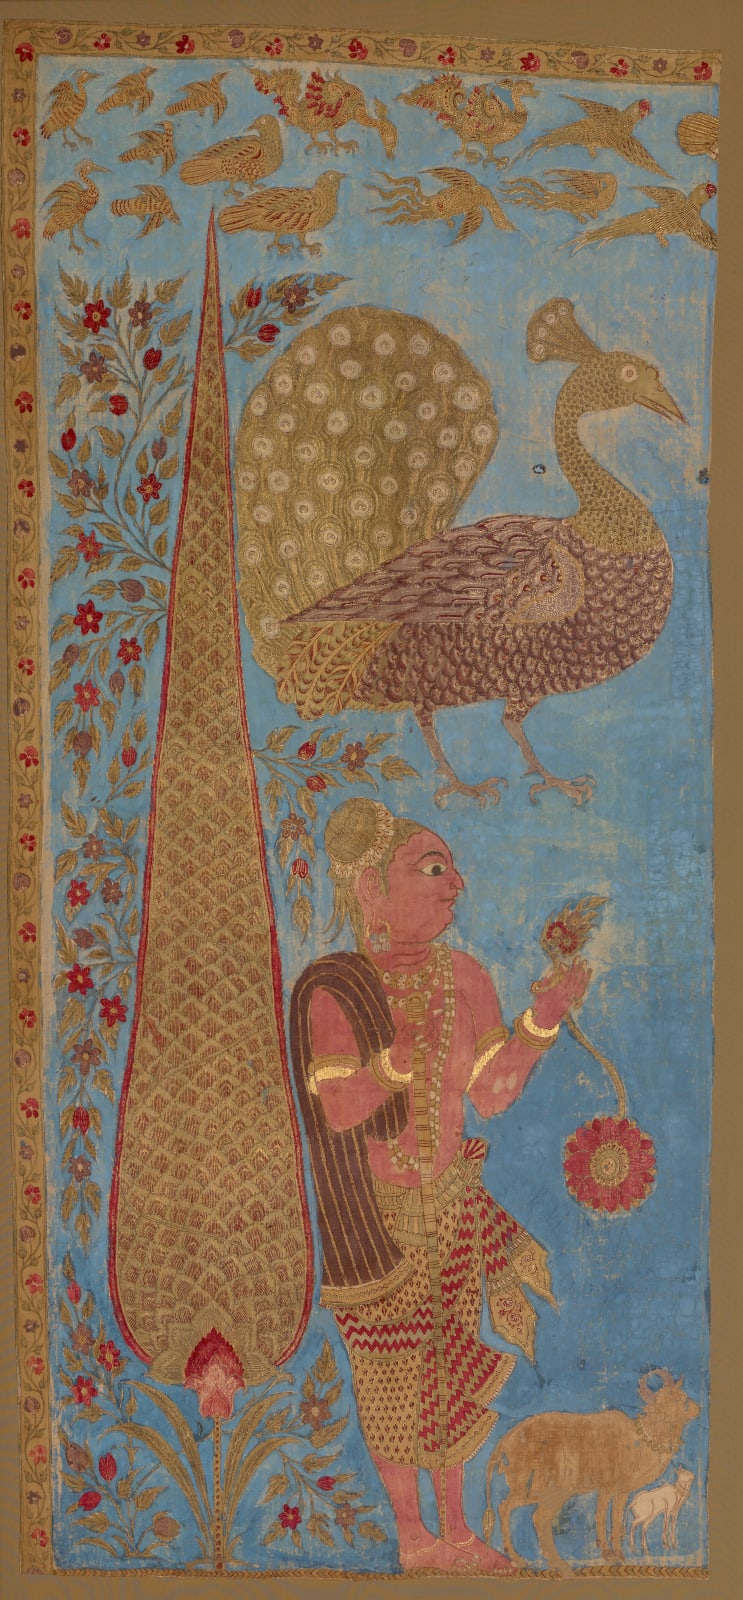 Pilgrim or guardian figure standing by a cyprus tree, South-east India, possibly Masulipatnam in coastal Deccan, mid-18th century